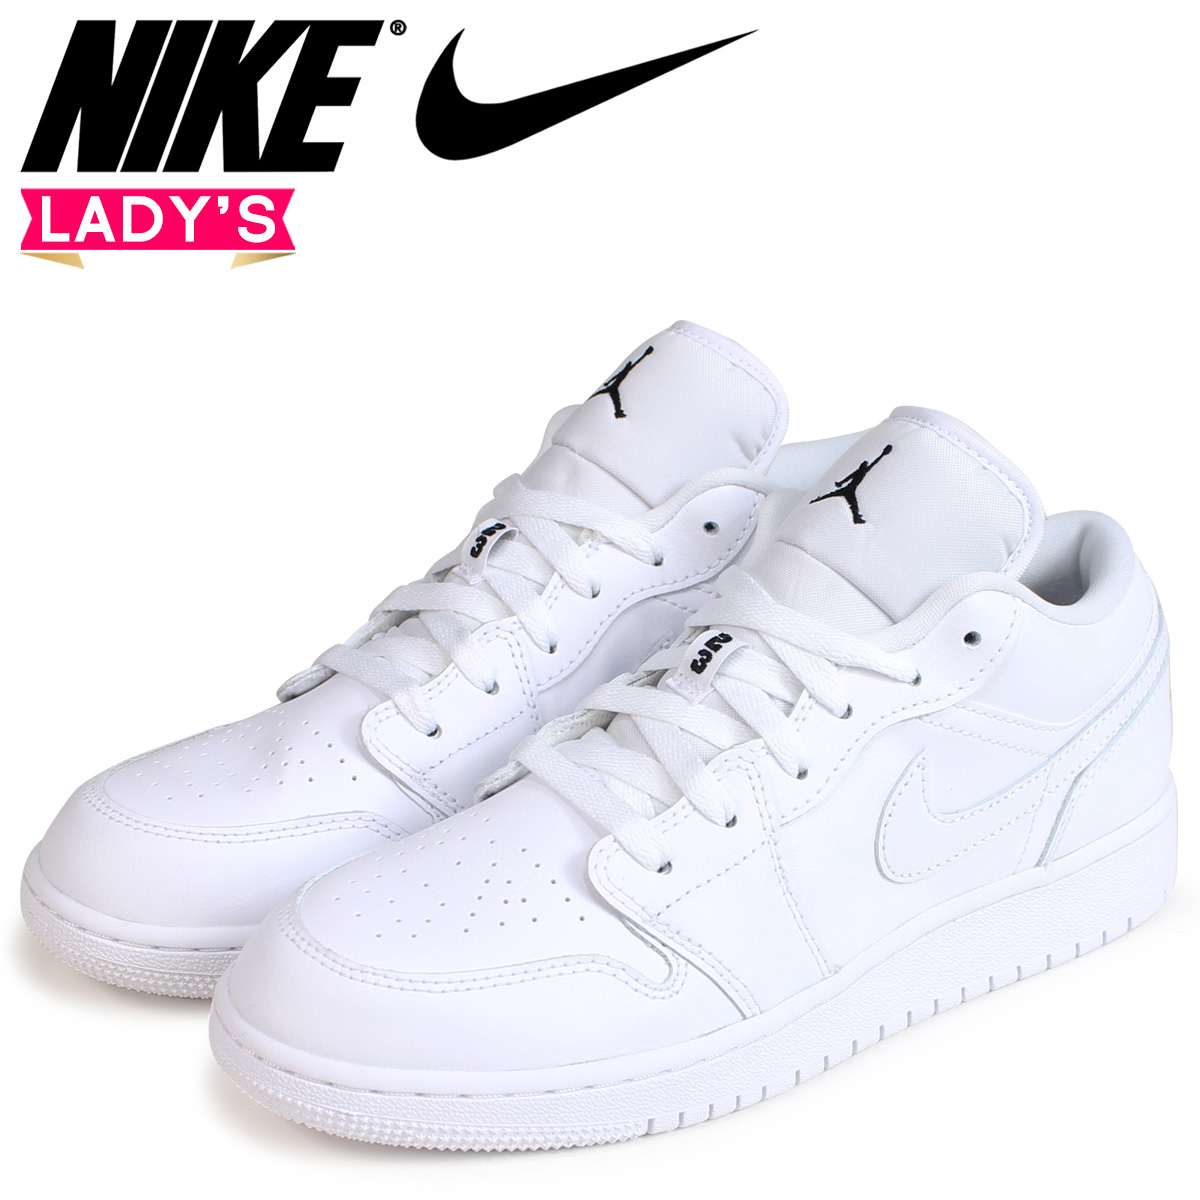 new product a483f d6ba0 NIKE Nike Air Jordan 1 Lady's sneakers AIR JORDAN 1 LOW GS 553,560-110  white white